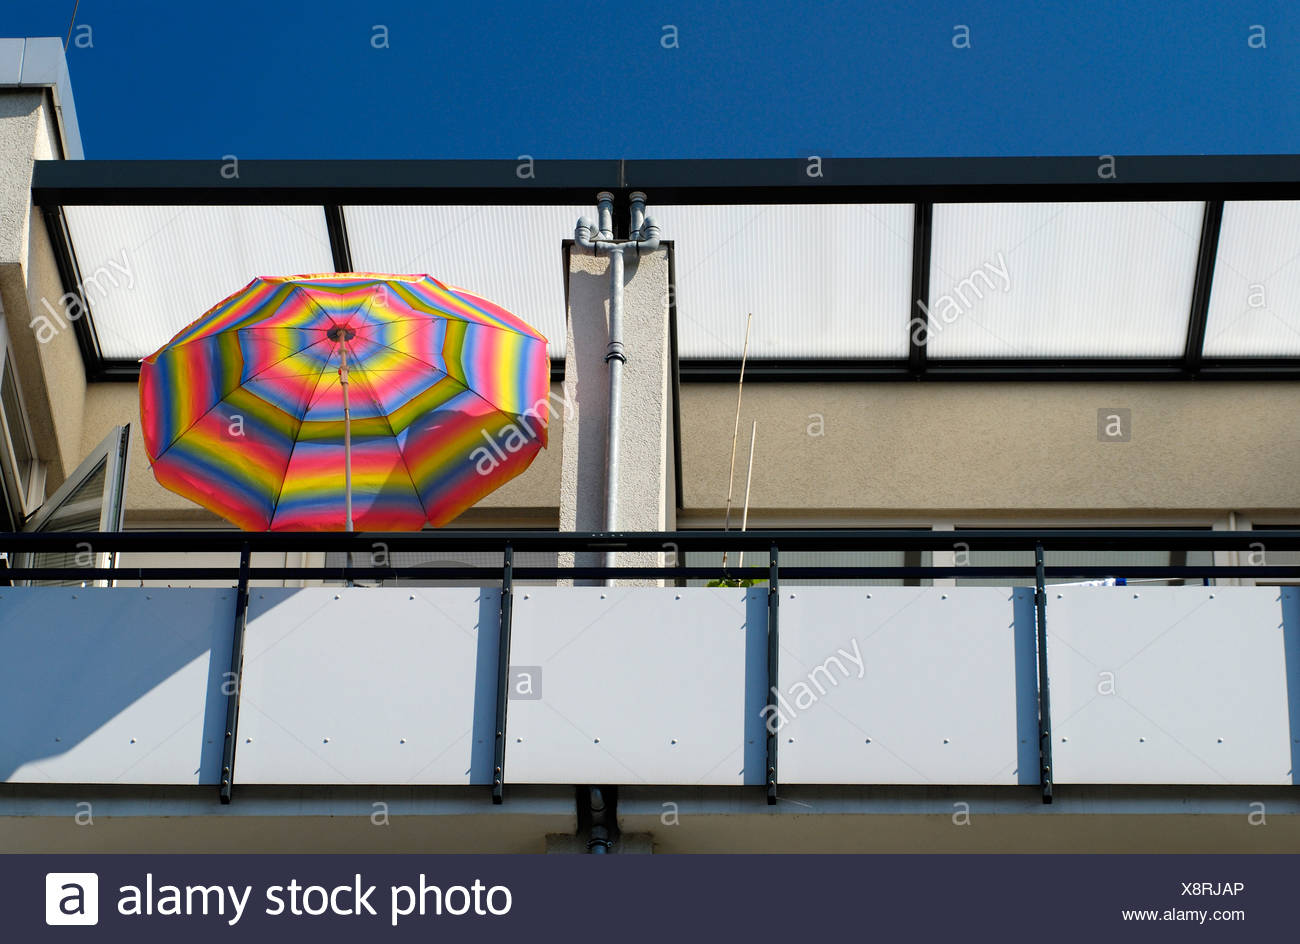 colorful sunshade upon a balcony - Stock Image